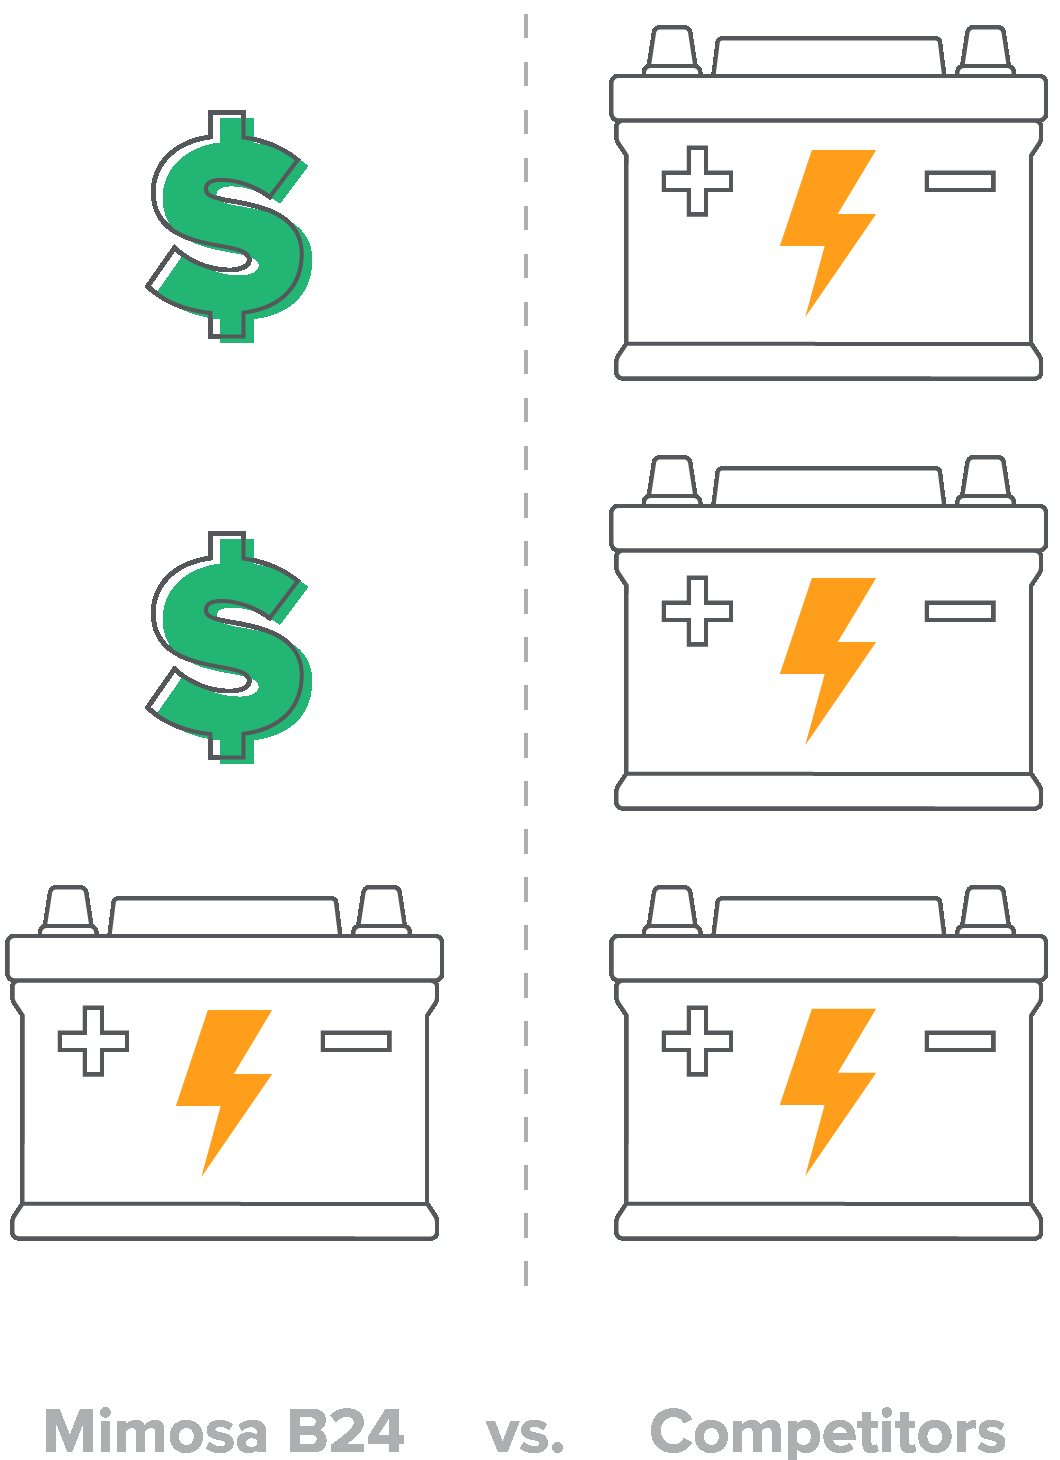 battery_m2x.png